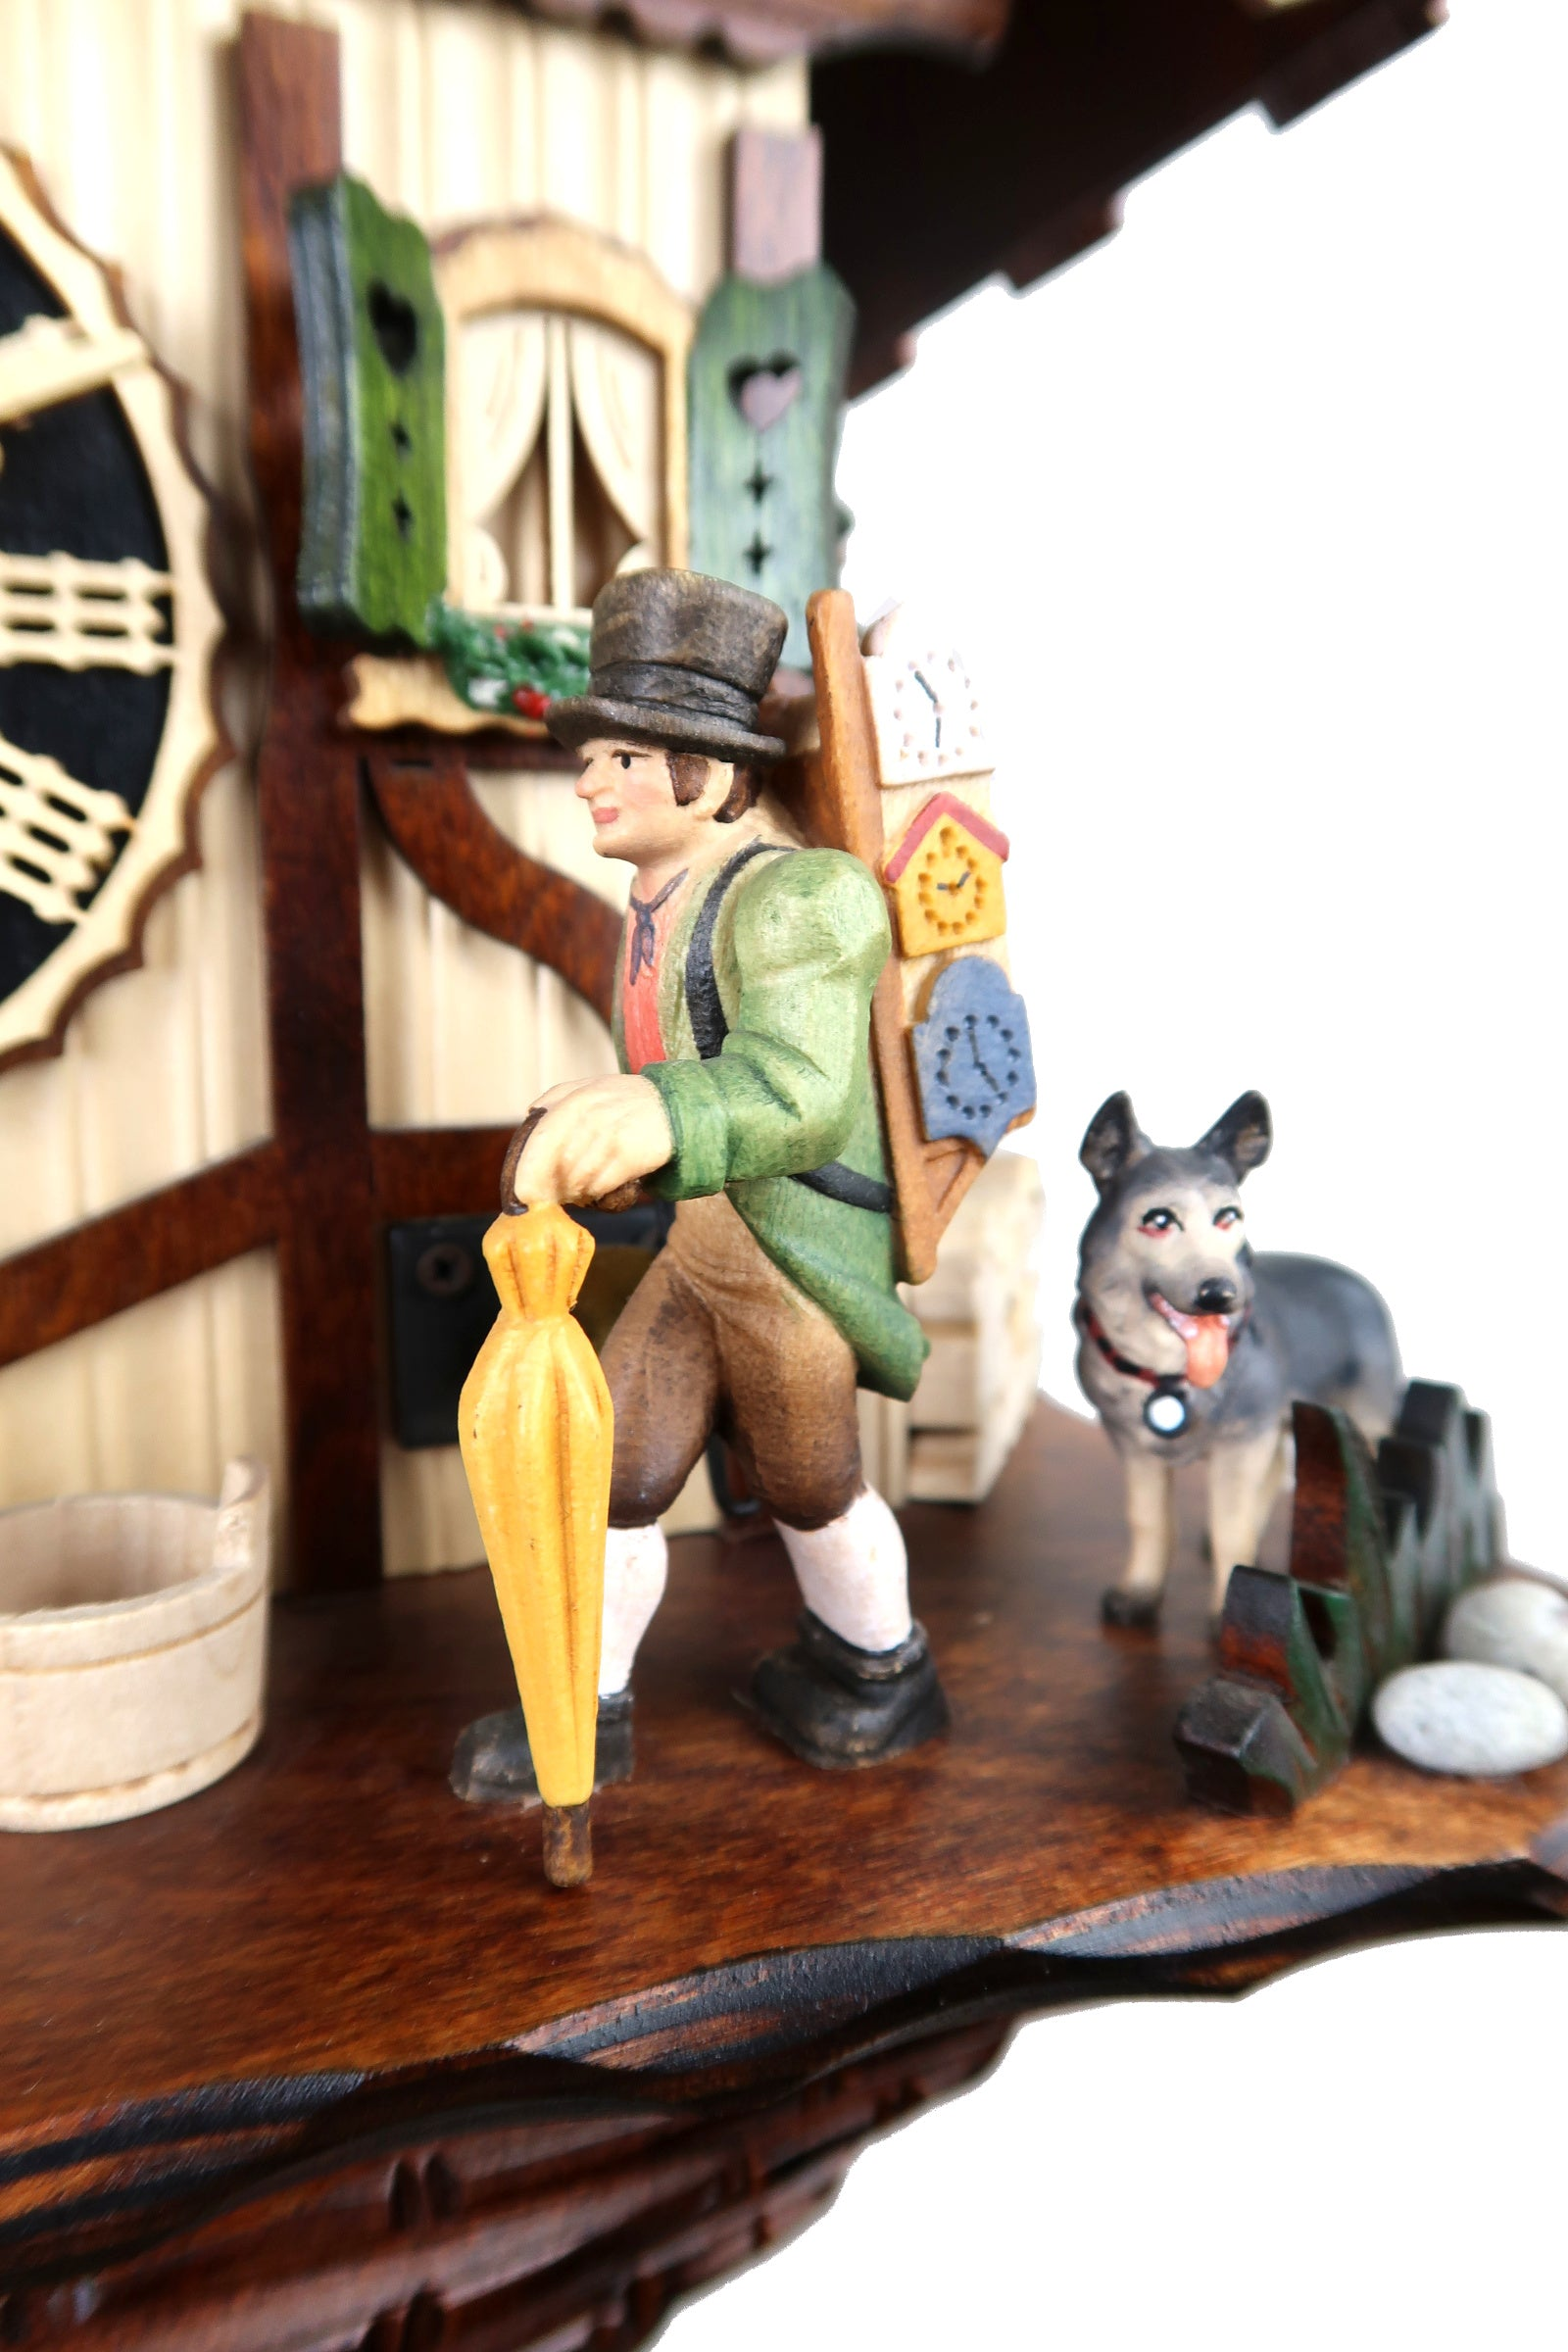 Cuckoo Clock Peddler from the Black Forest wooden carving